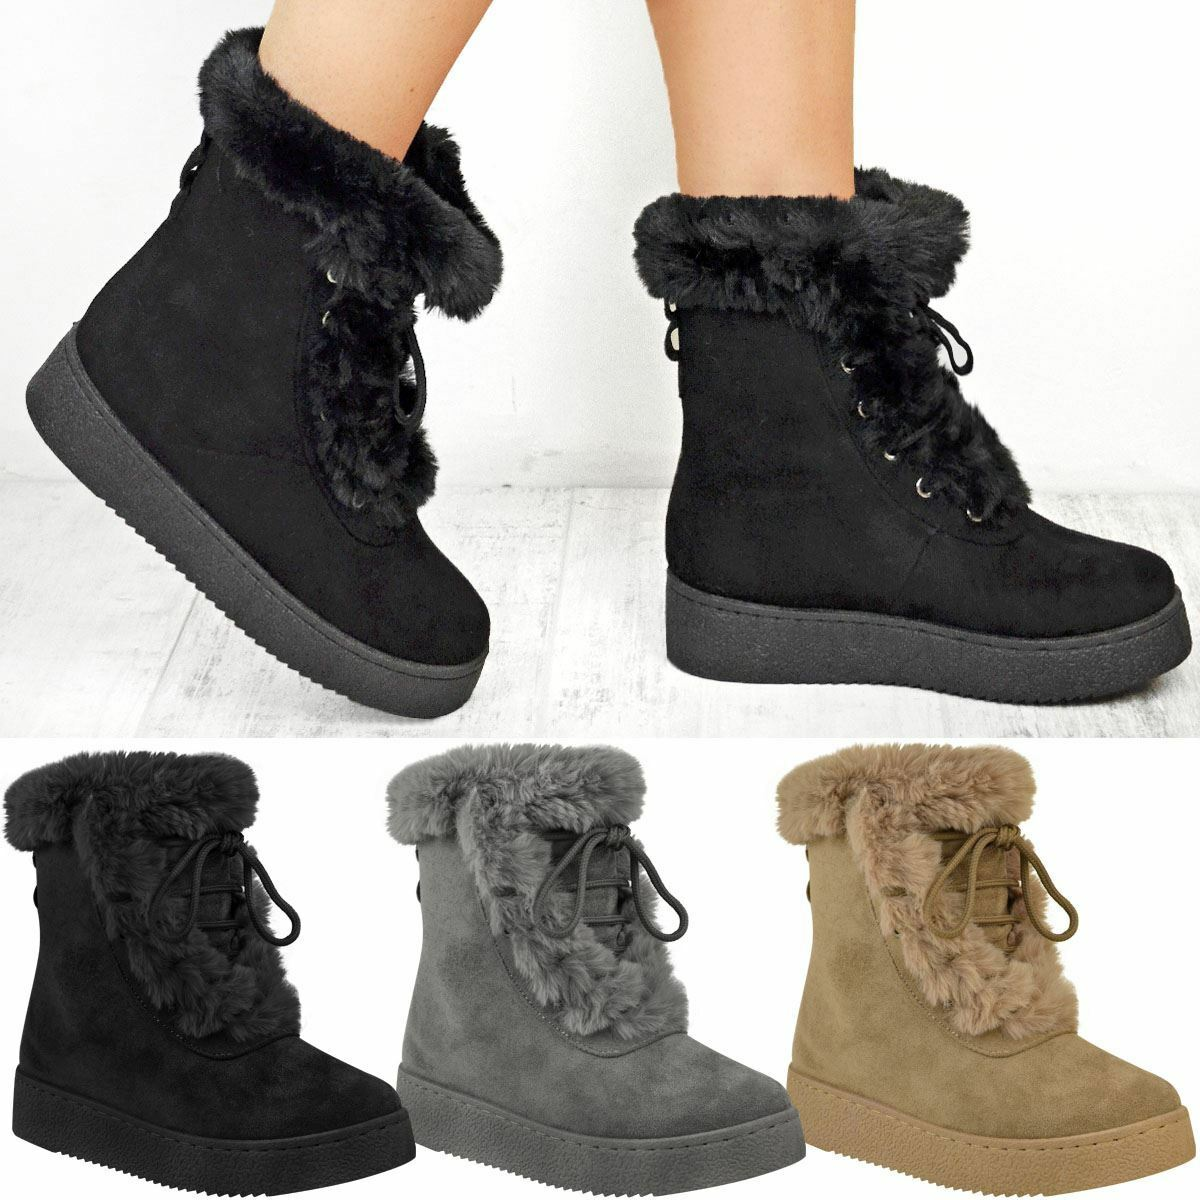 Womens Ladies Winter Ankle Boots Fur Fleece Lining Snow Ski Flatforms Shoe Size